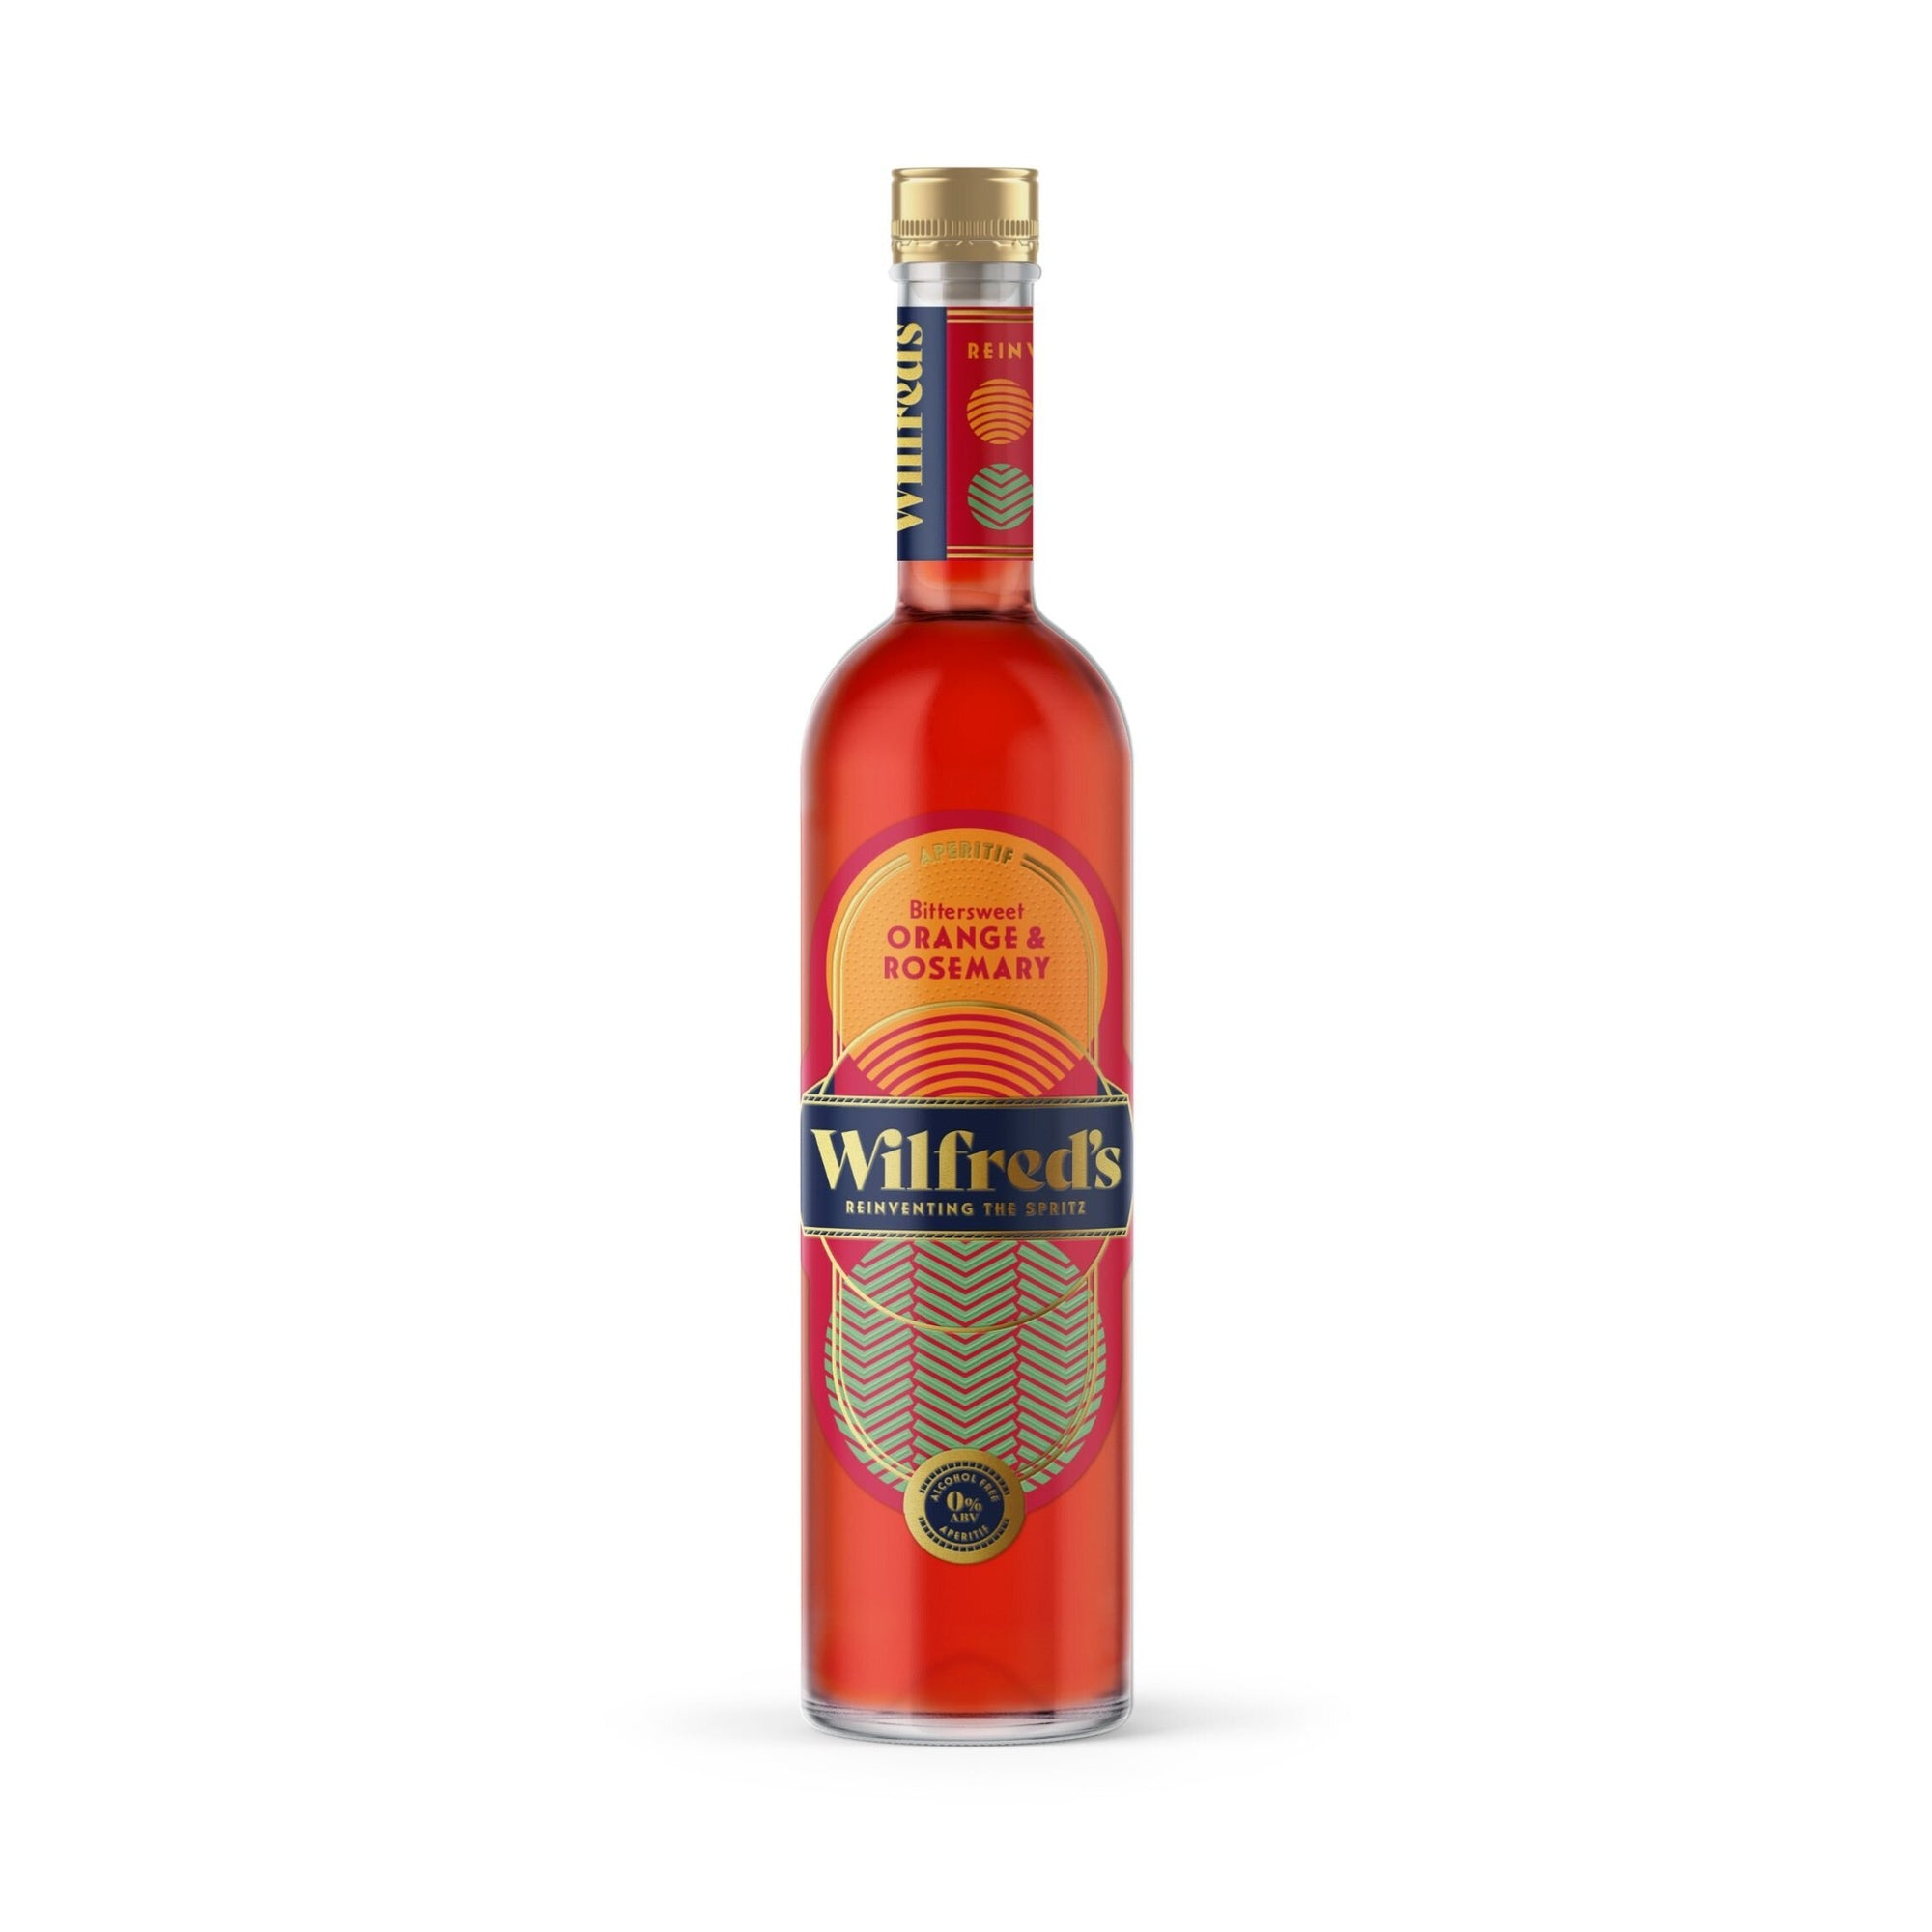 WILFRED'S APERITIF - ORANGE & ROSEMARY 500ml